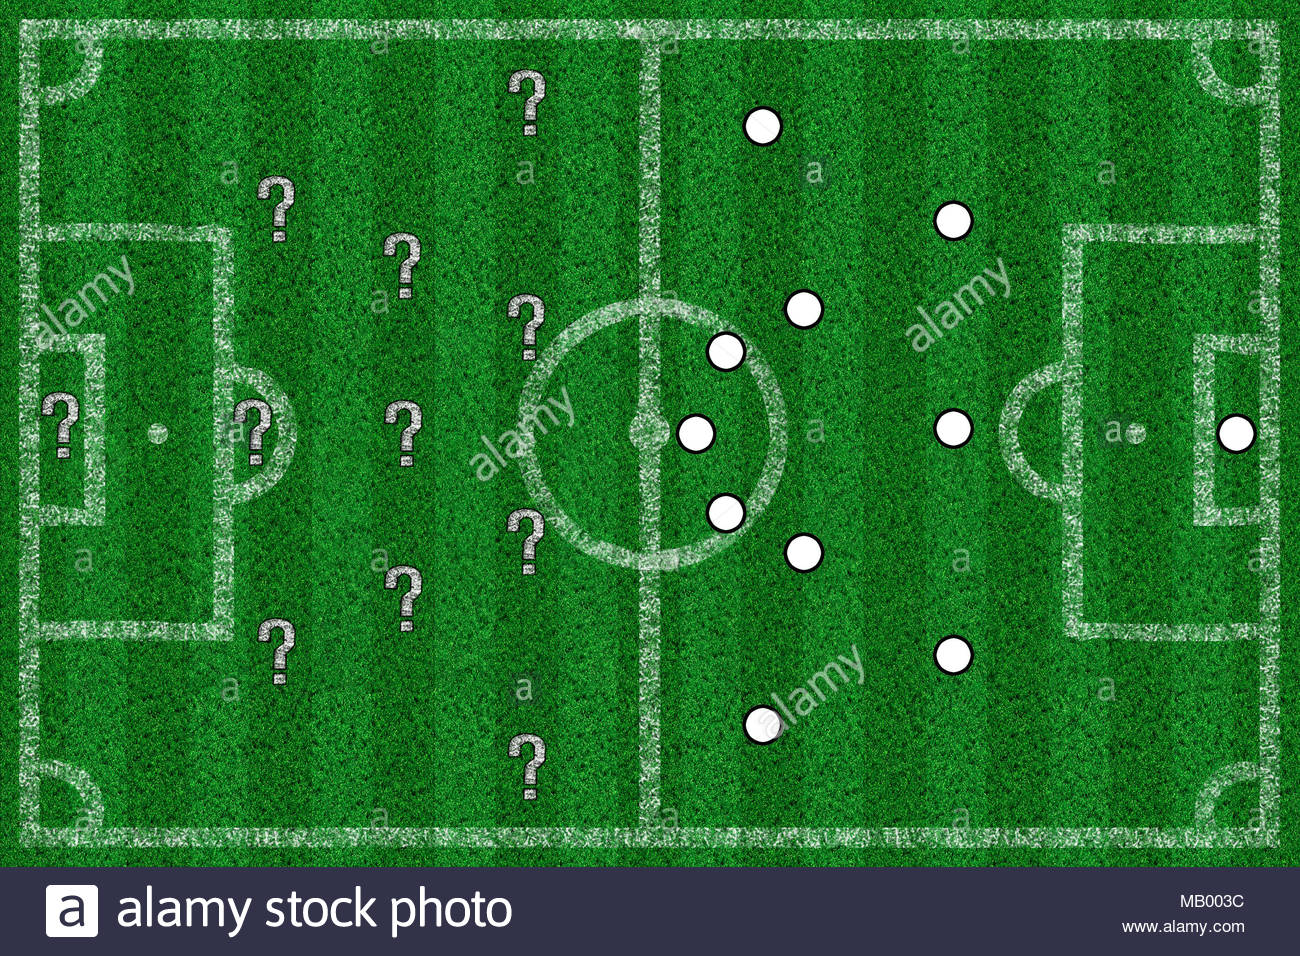 Football field with lines and tactics from above - Stock Image